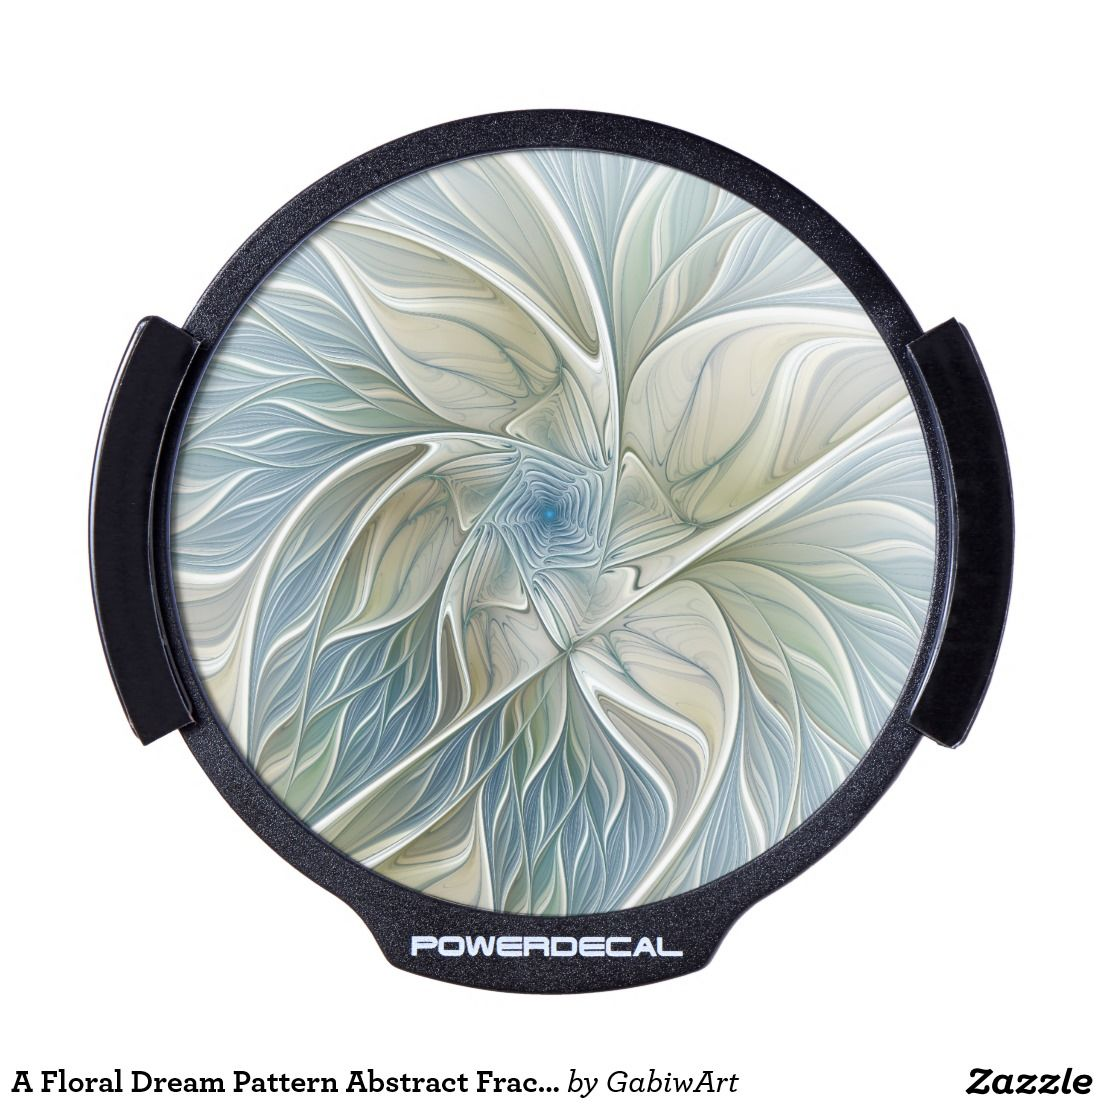 A Floral Dream Pattern Abstract Fractal Art LED Window Decal